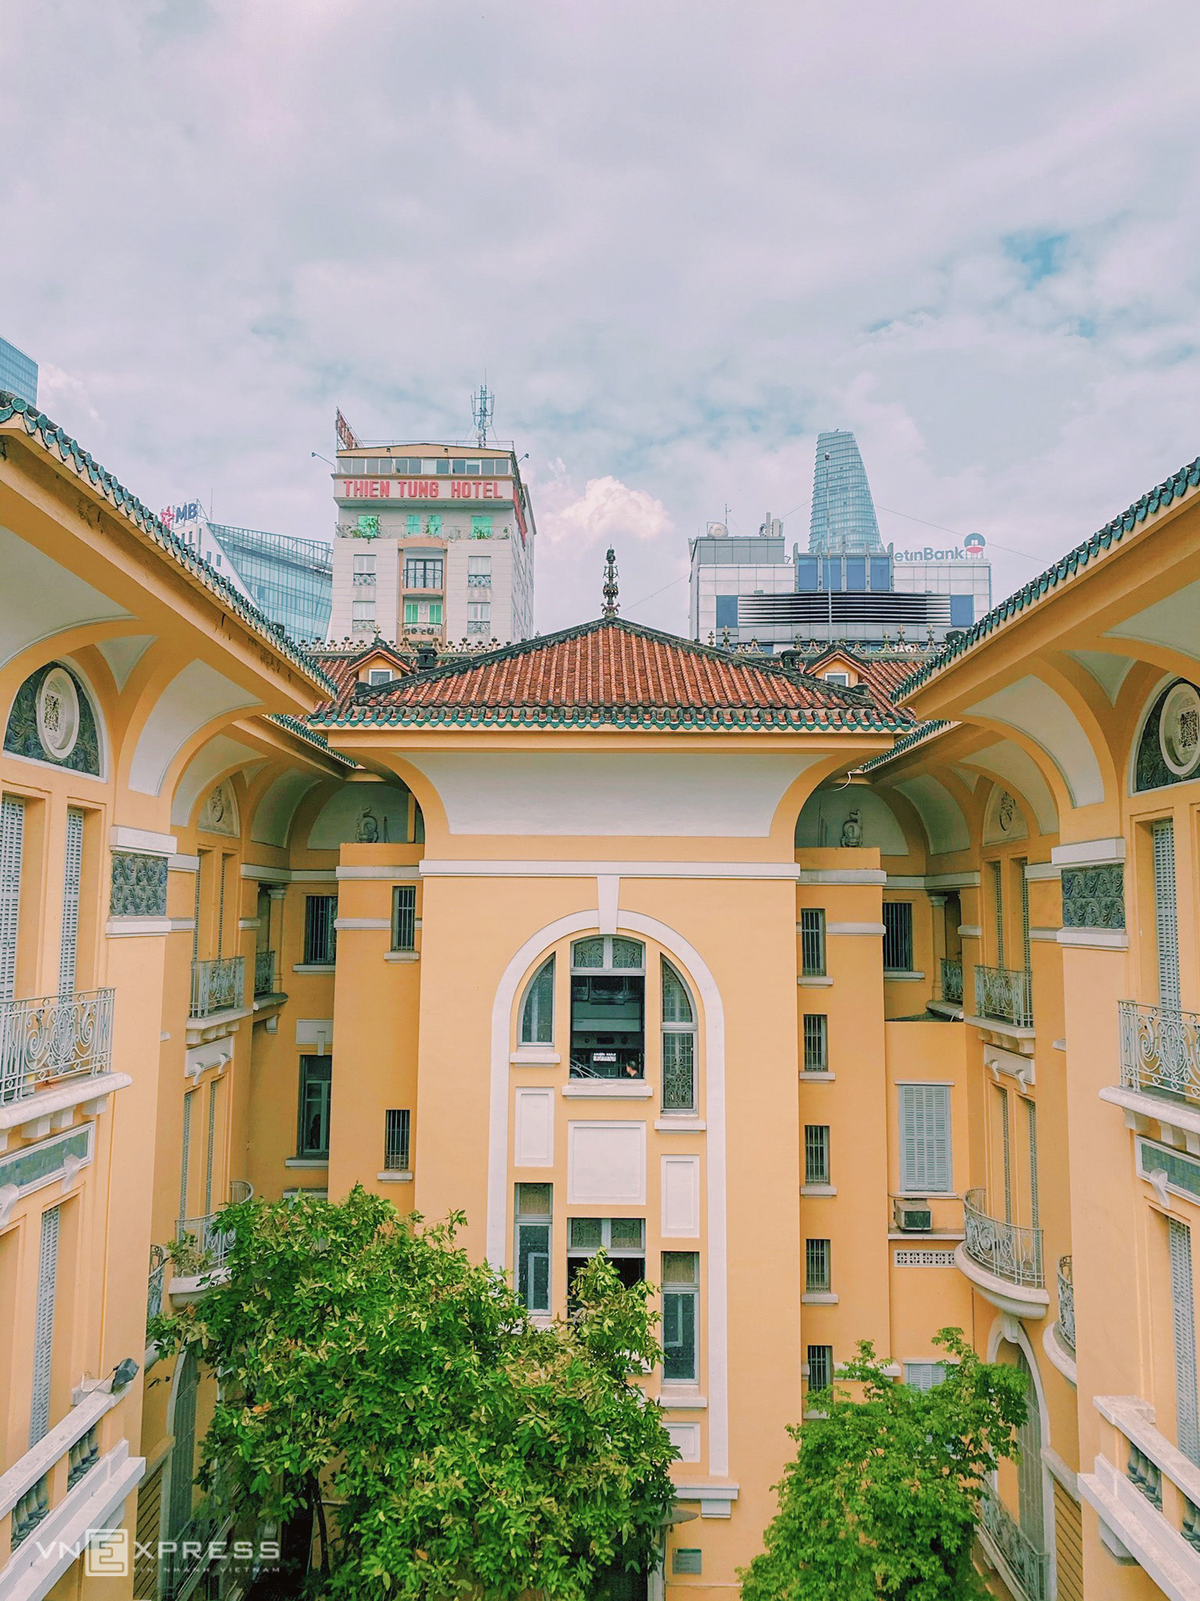 Stunning corners to take check-in photo in Ho Chi Minh City Museum of Fine Arts